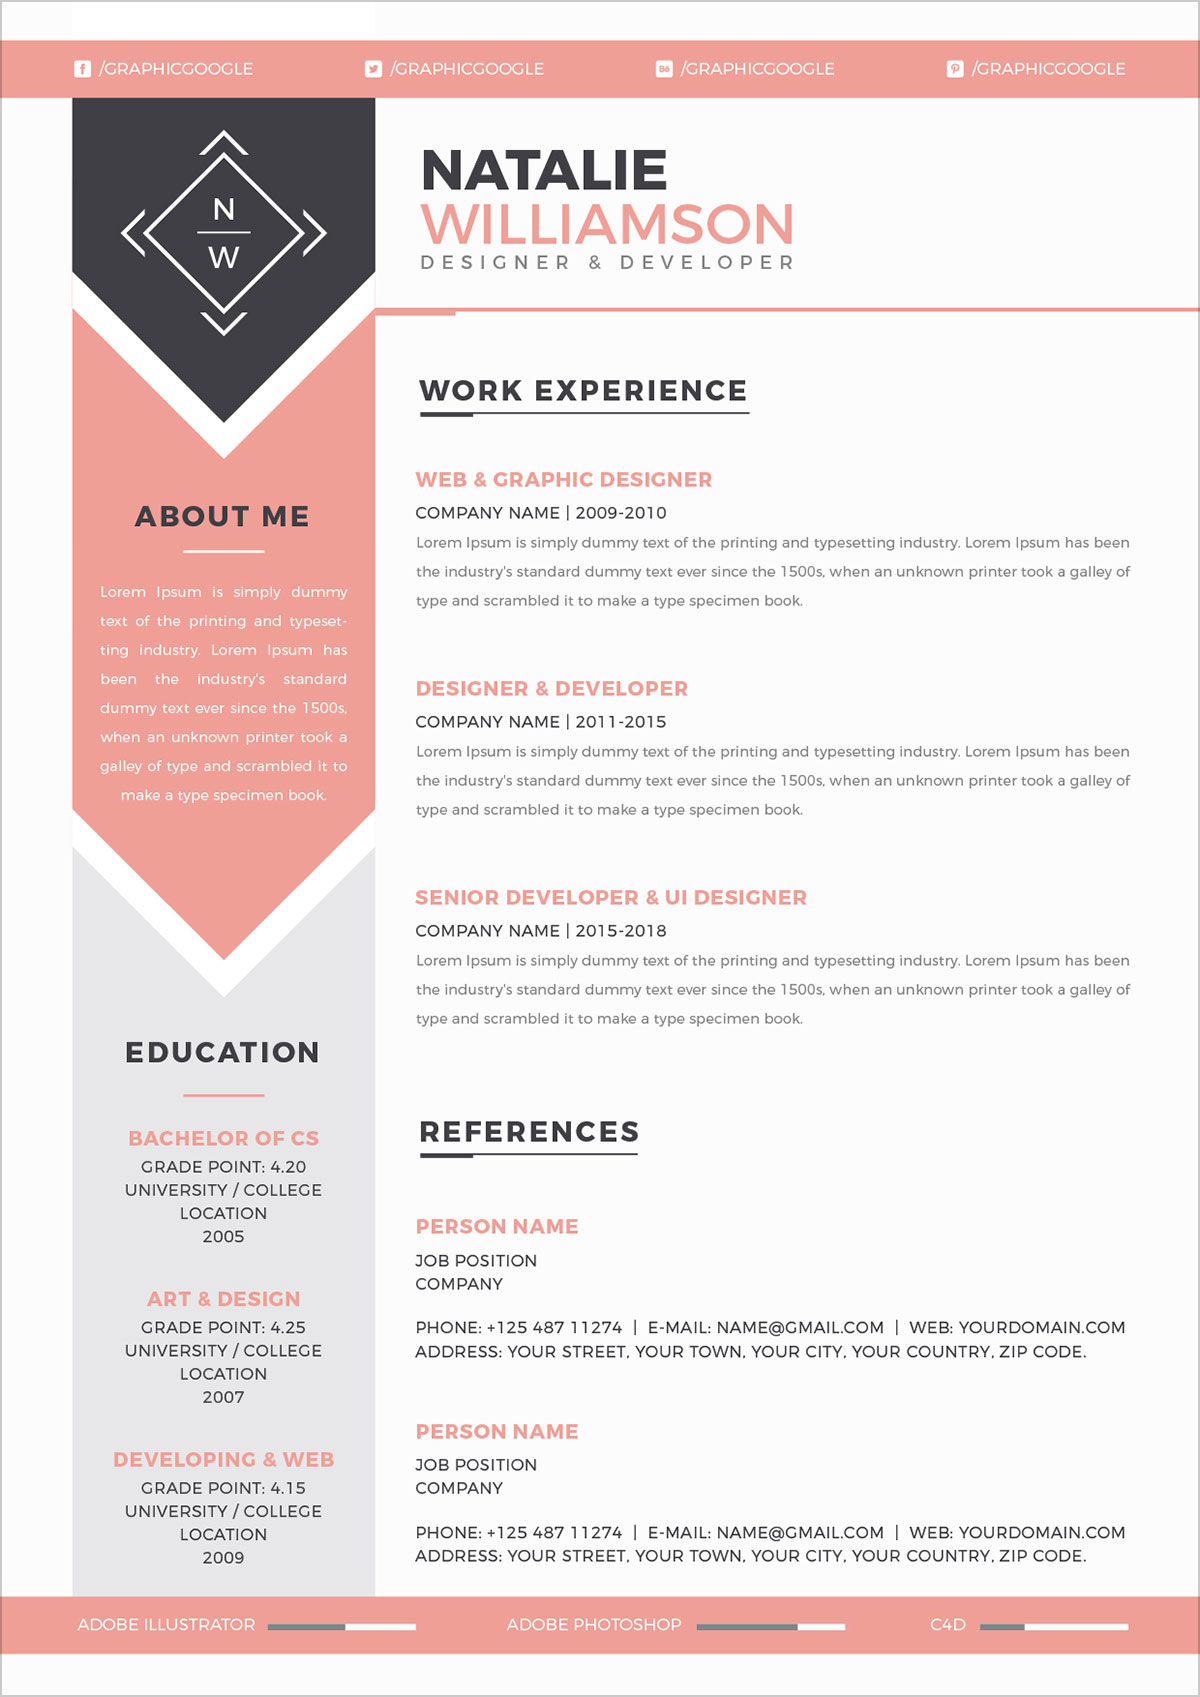 Free-Modern-Resume-CV-Template-&-Cover-Letter-Ai-For-Designers-and-Developers- (3)